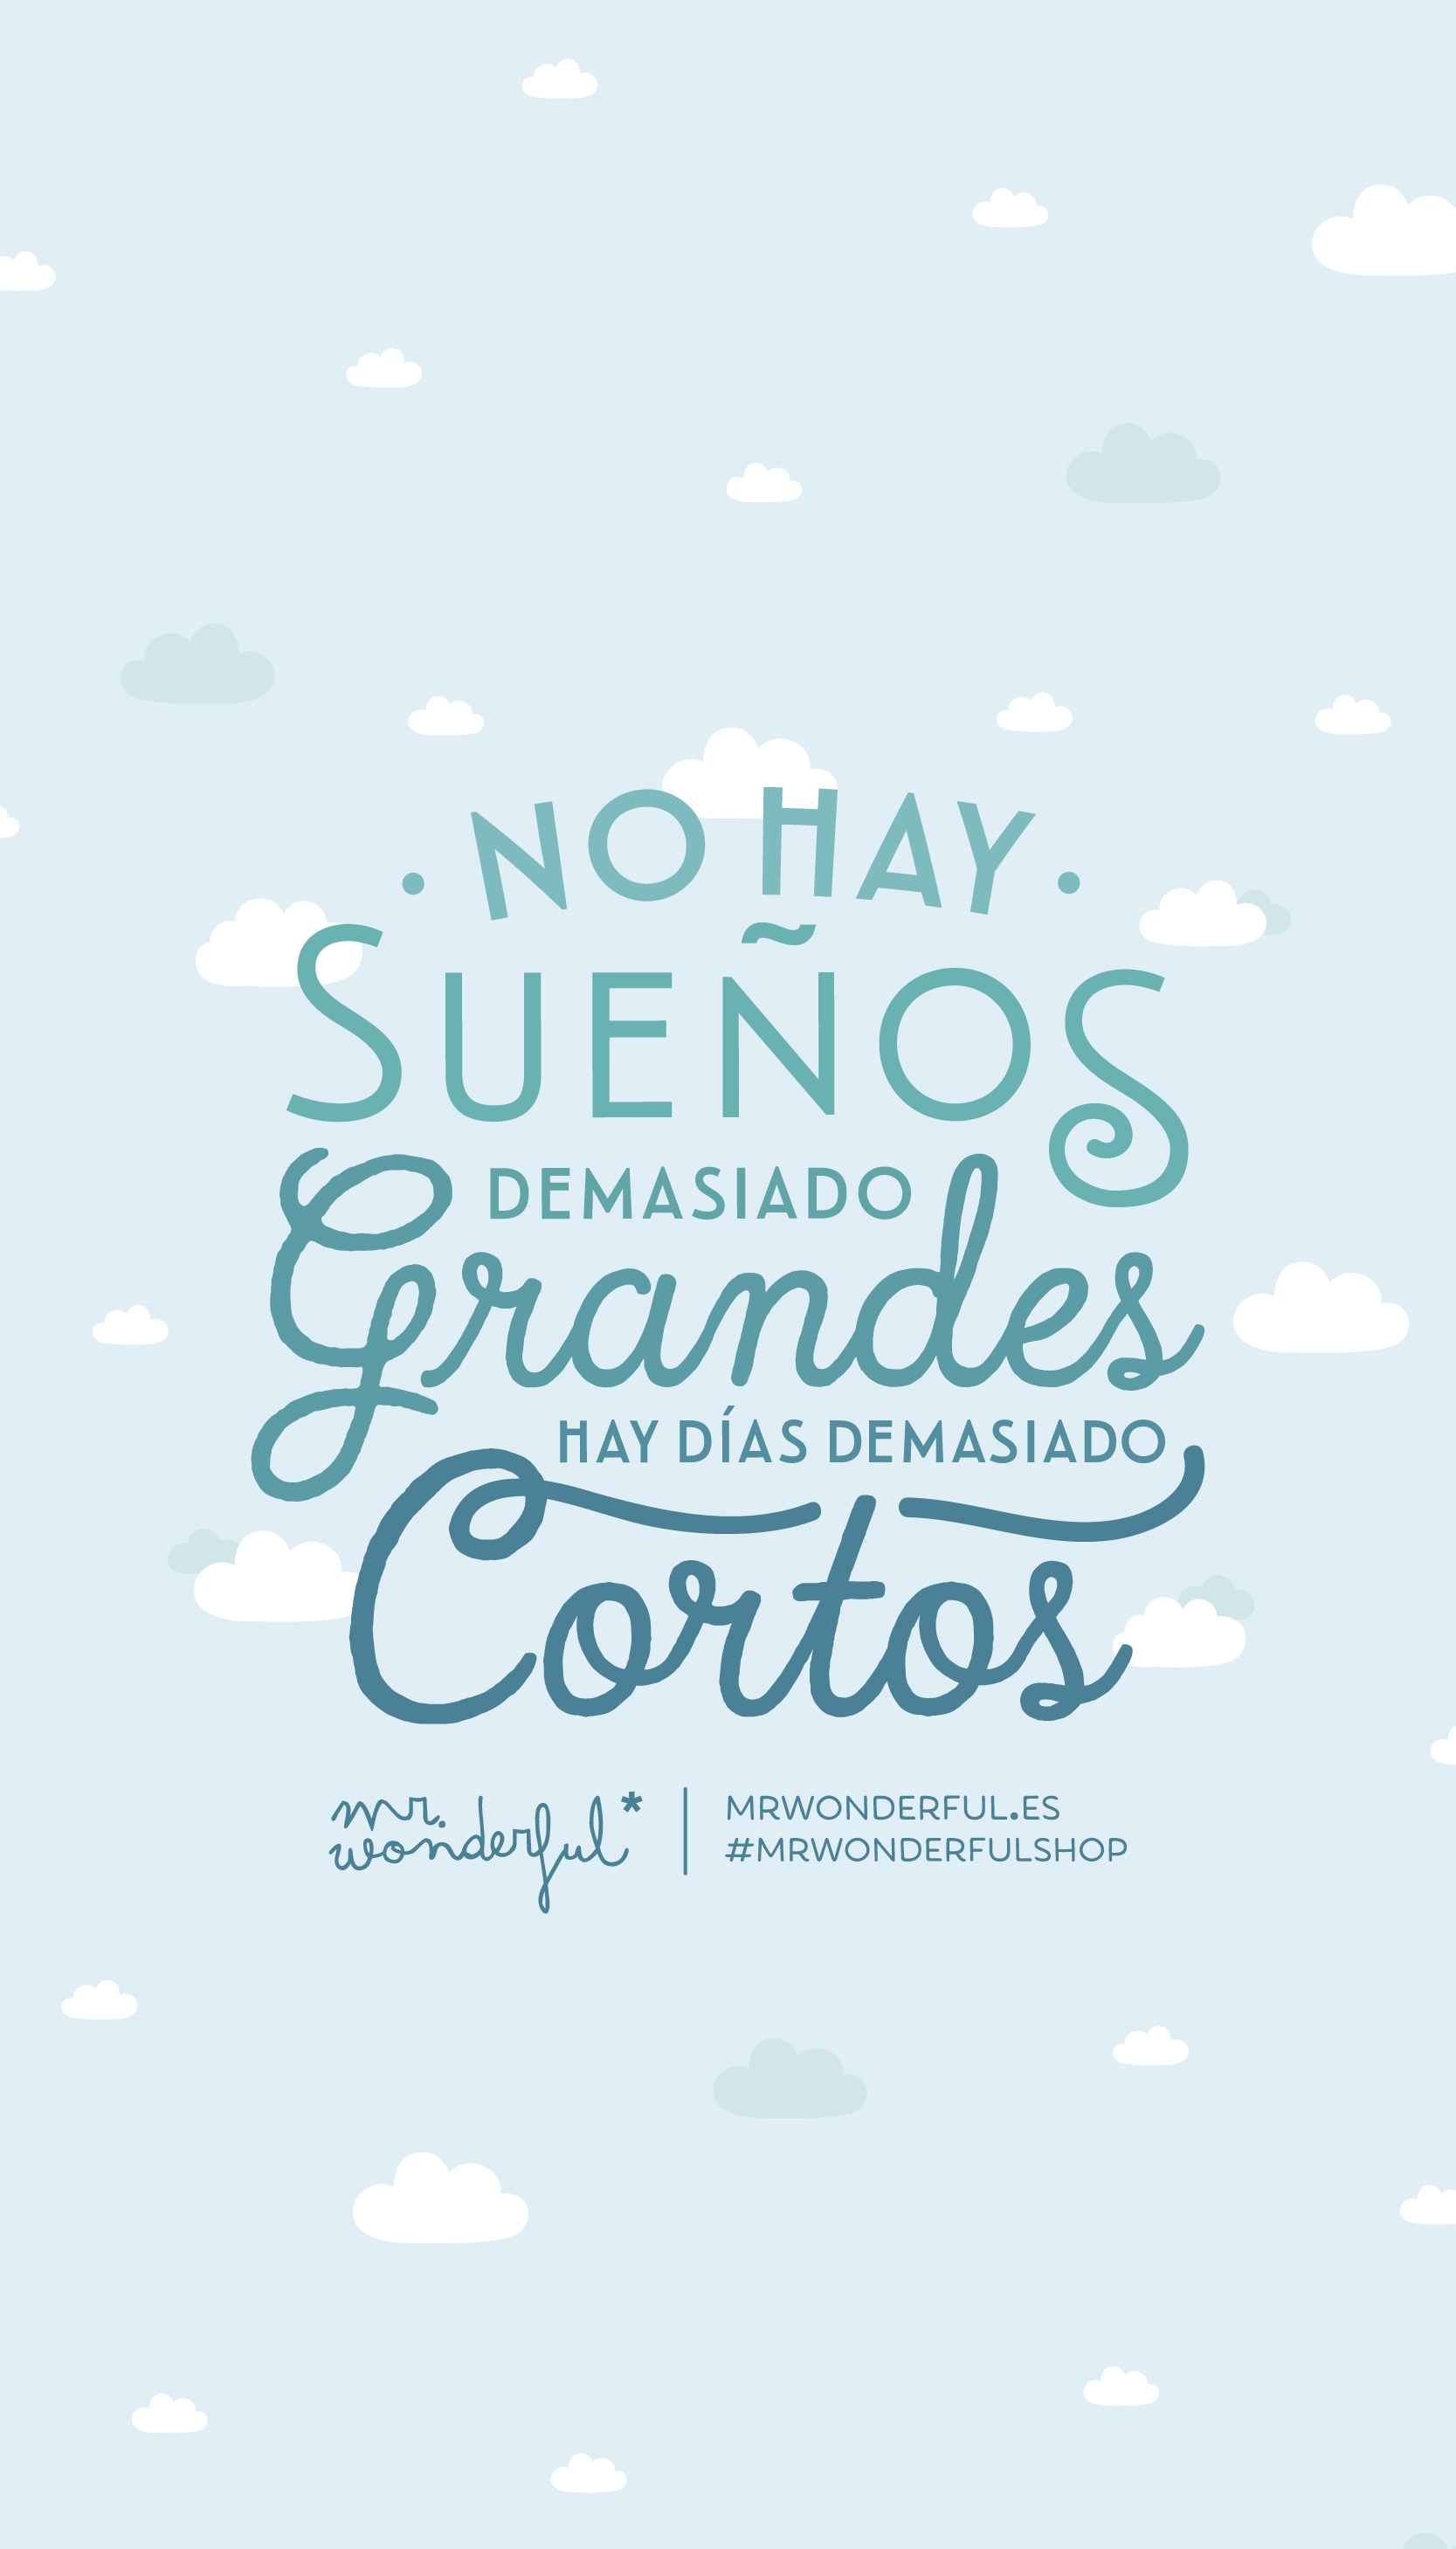 Fondos De Pantalla Descargables Mr Wonderful Onlyness: fondos movil mr wonderful